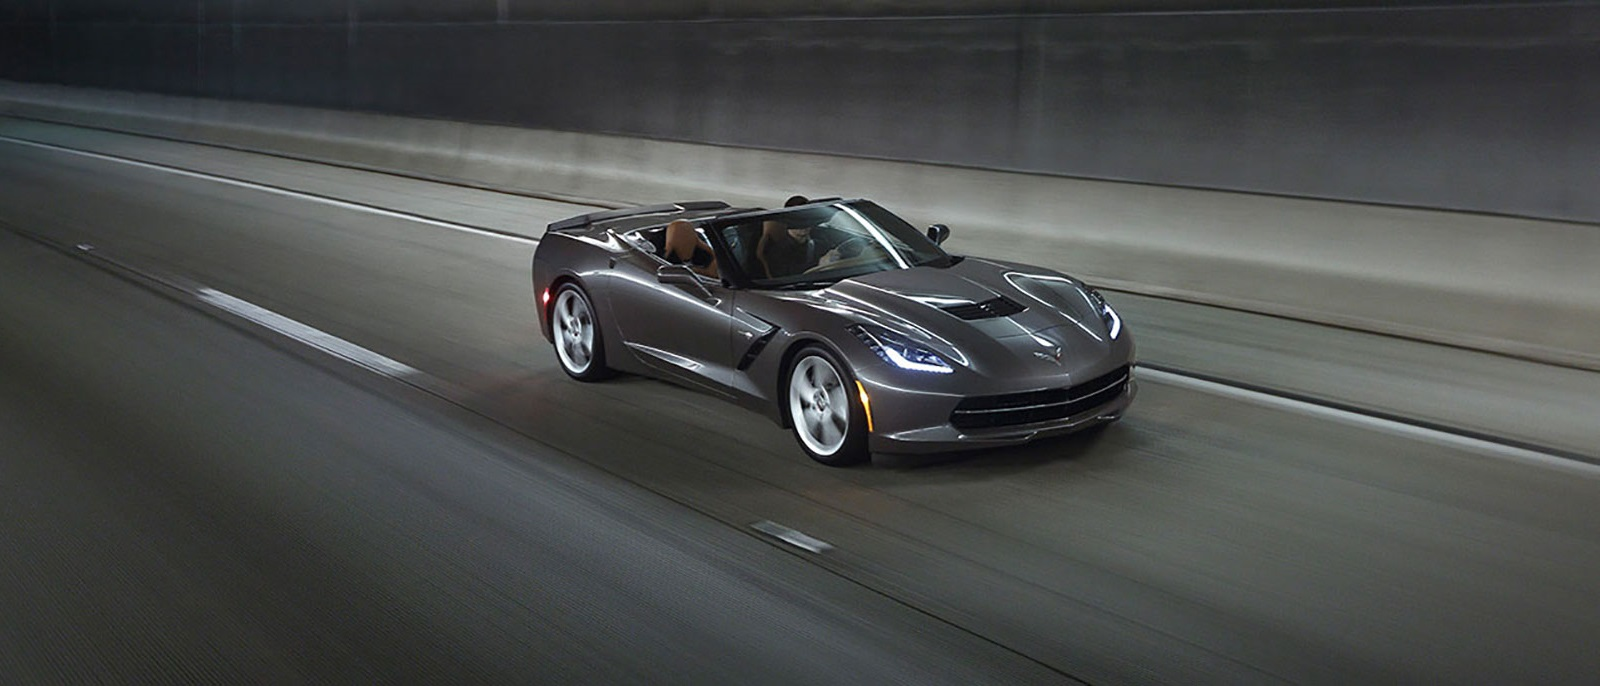 2015 Corvette Stingray on roadway